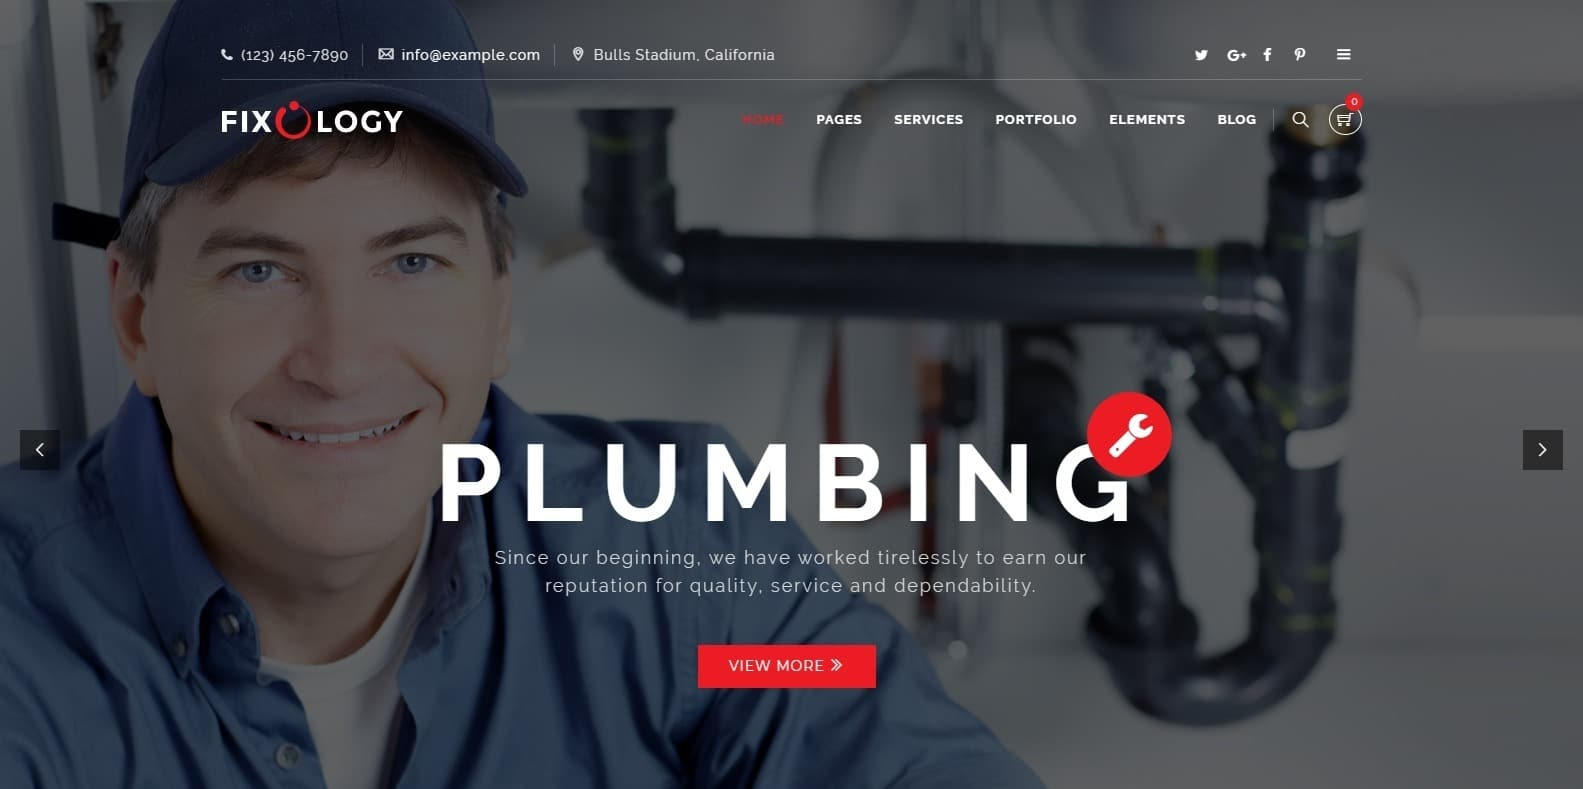 fixology-handyman-website-template-wordpress